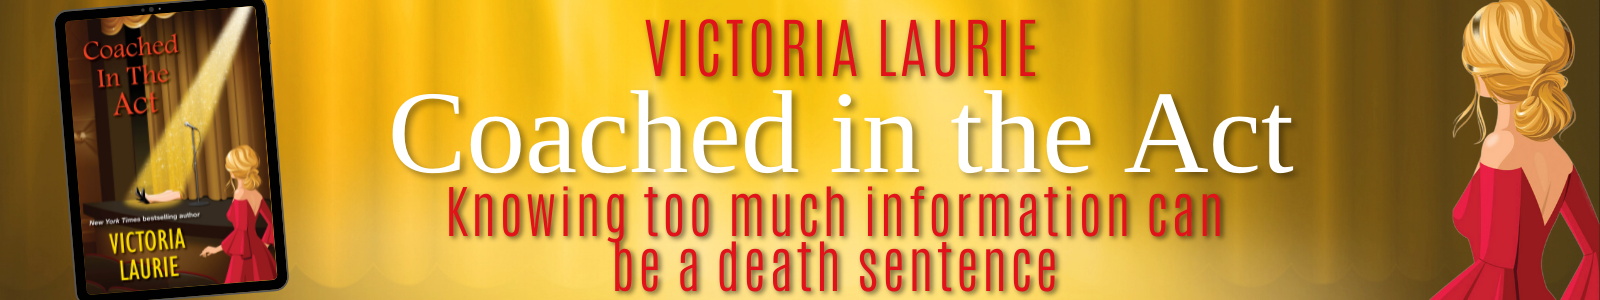 Victoria Laurie 1